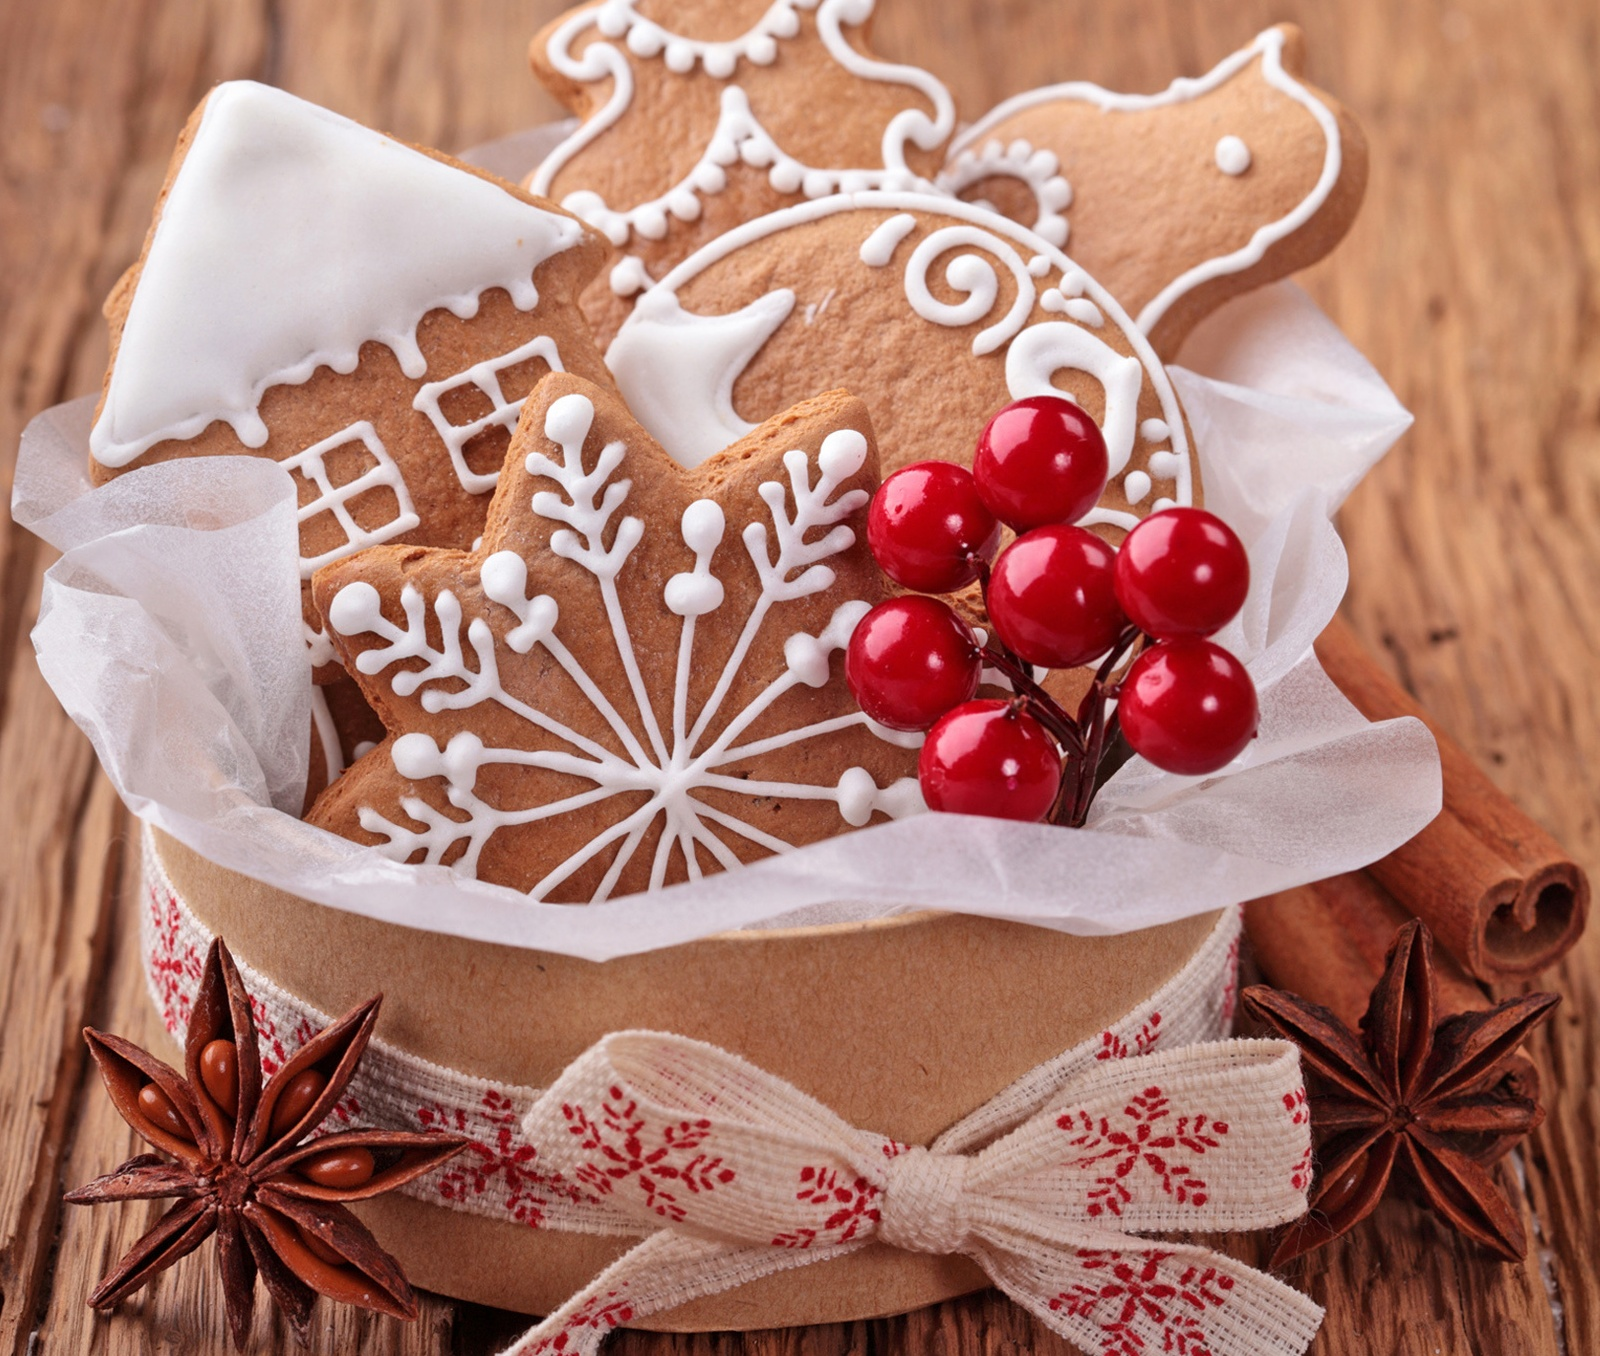 http://www.moviehdwallpapers.com/wp-content/uploads/2014/10/Christmas-Cookies-food-32709944-1600-1356.jpg